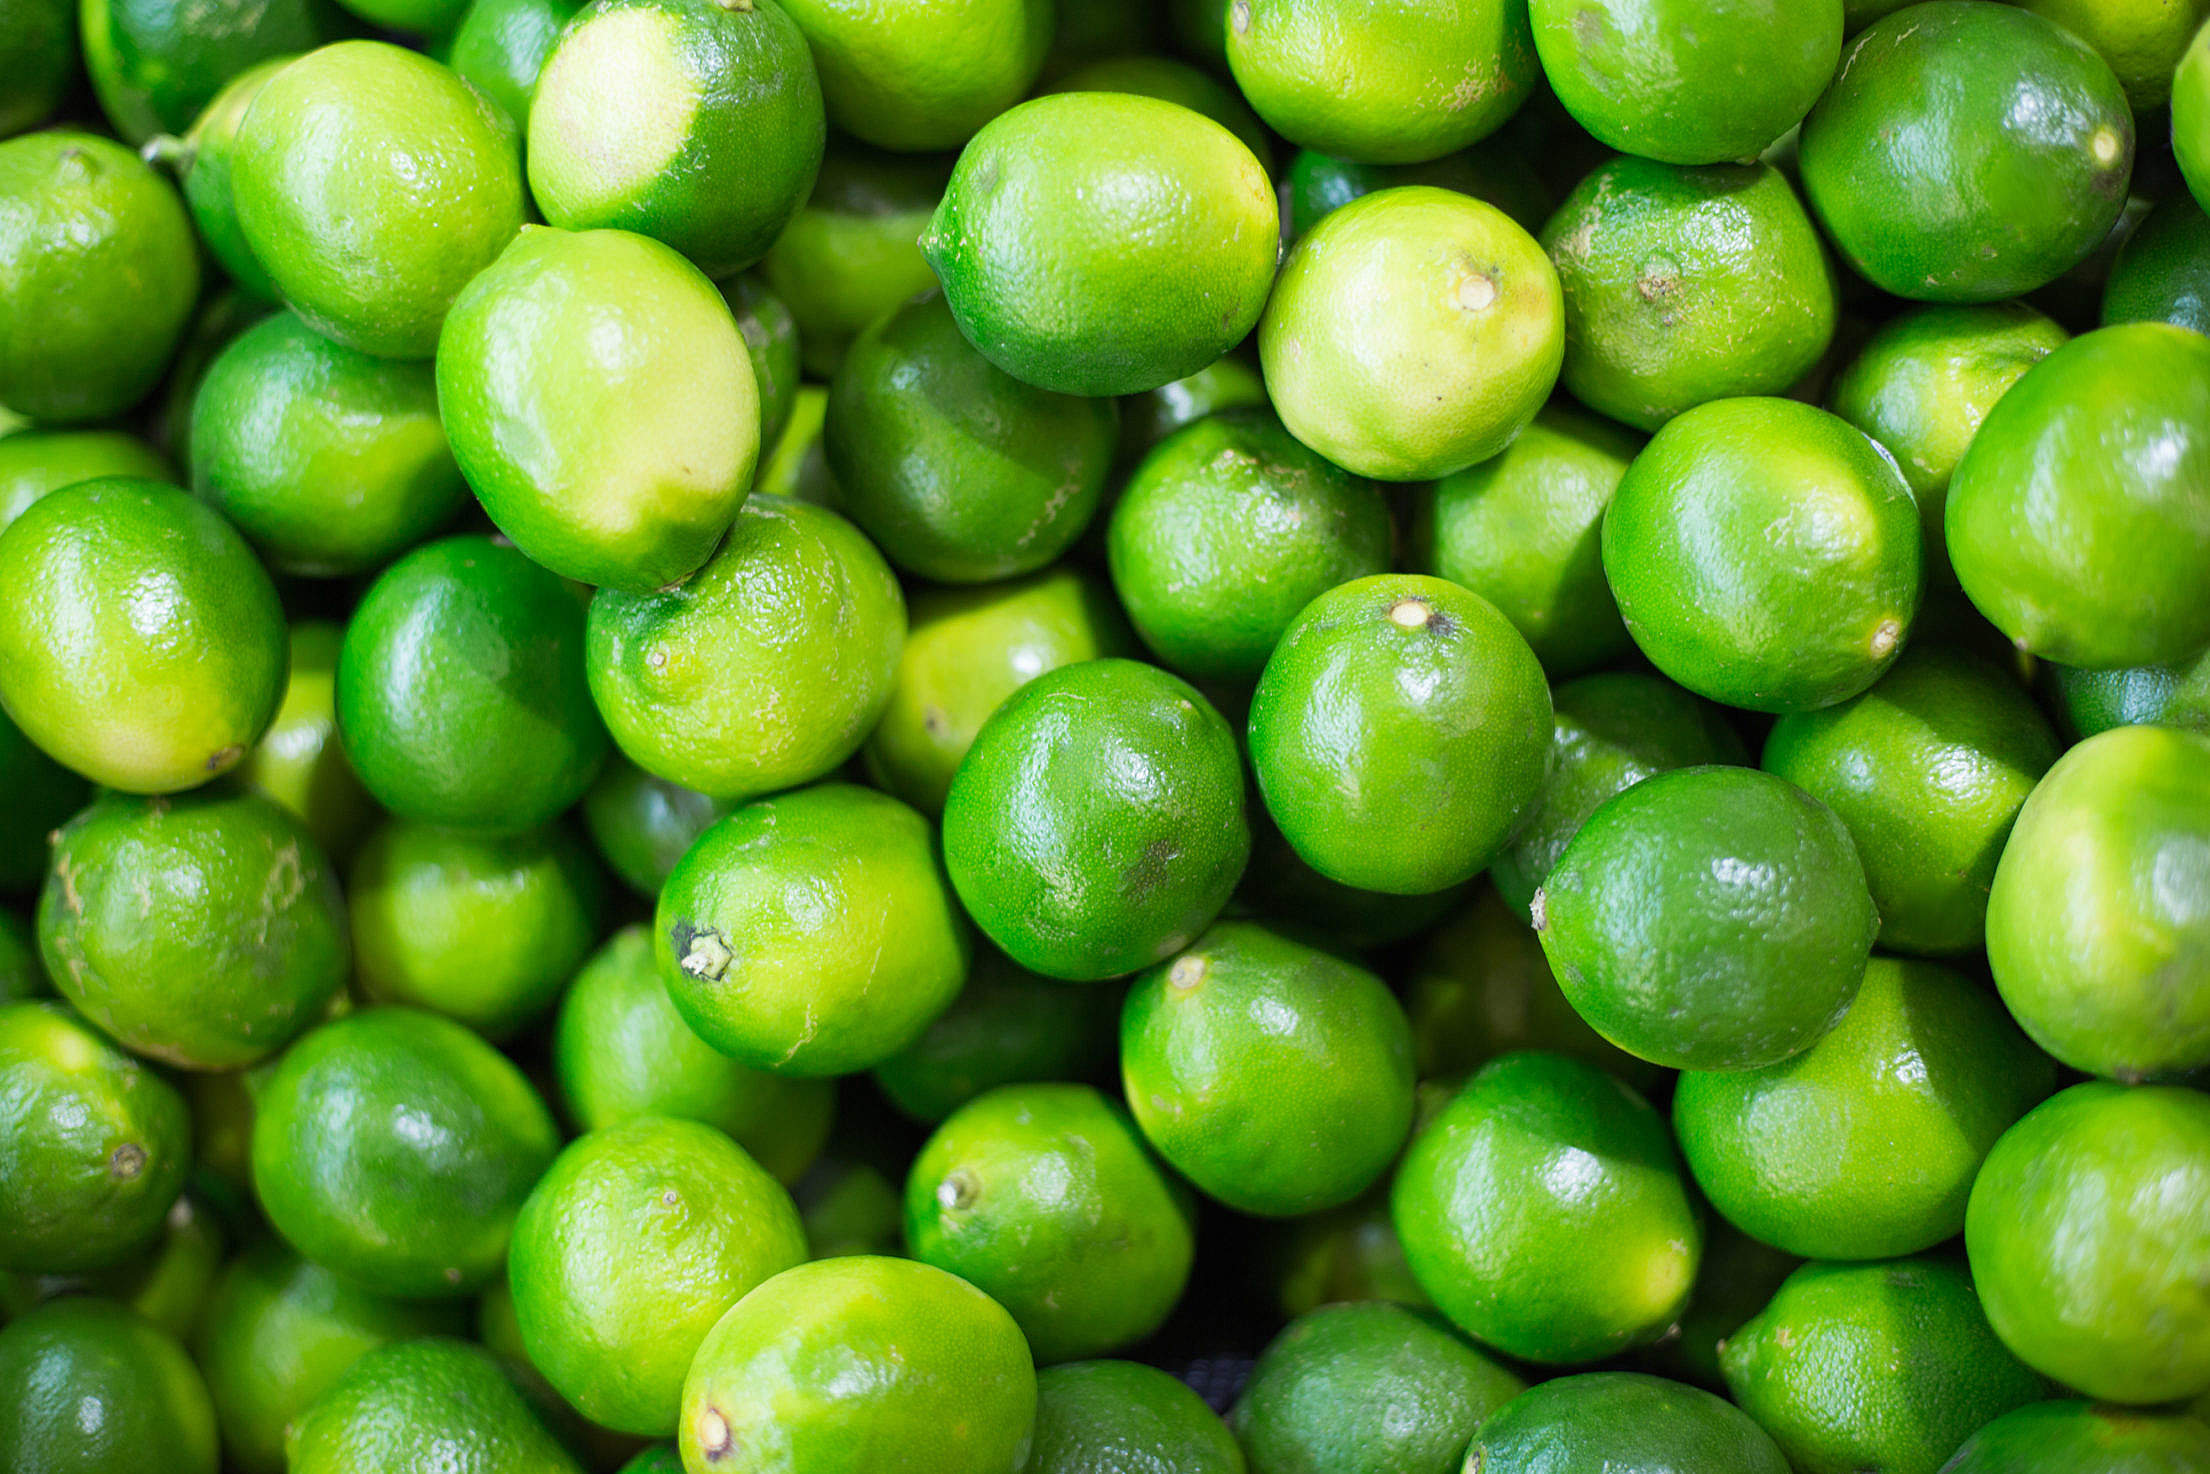 Pile of Green Limes on Market Pattern Free Stock Photo